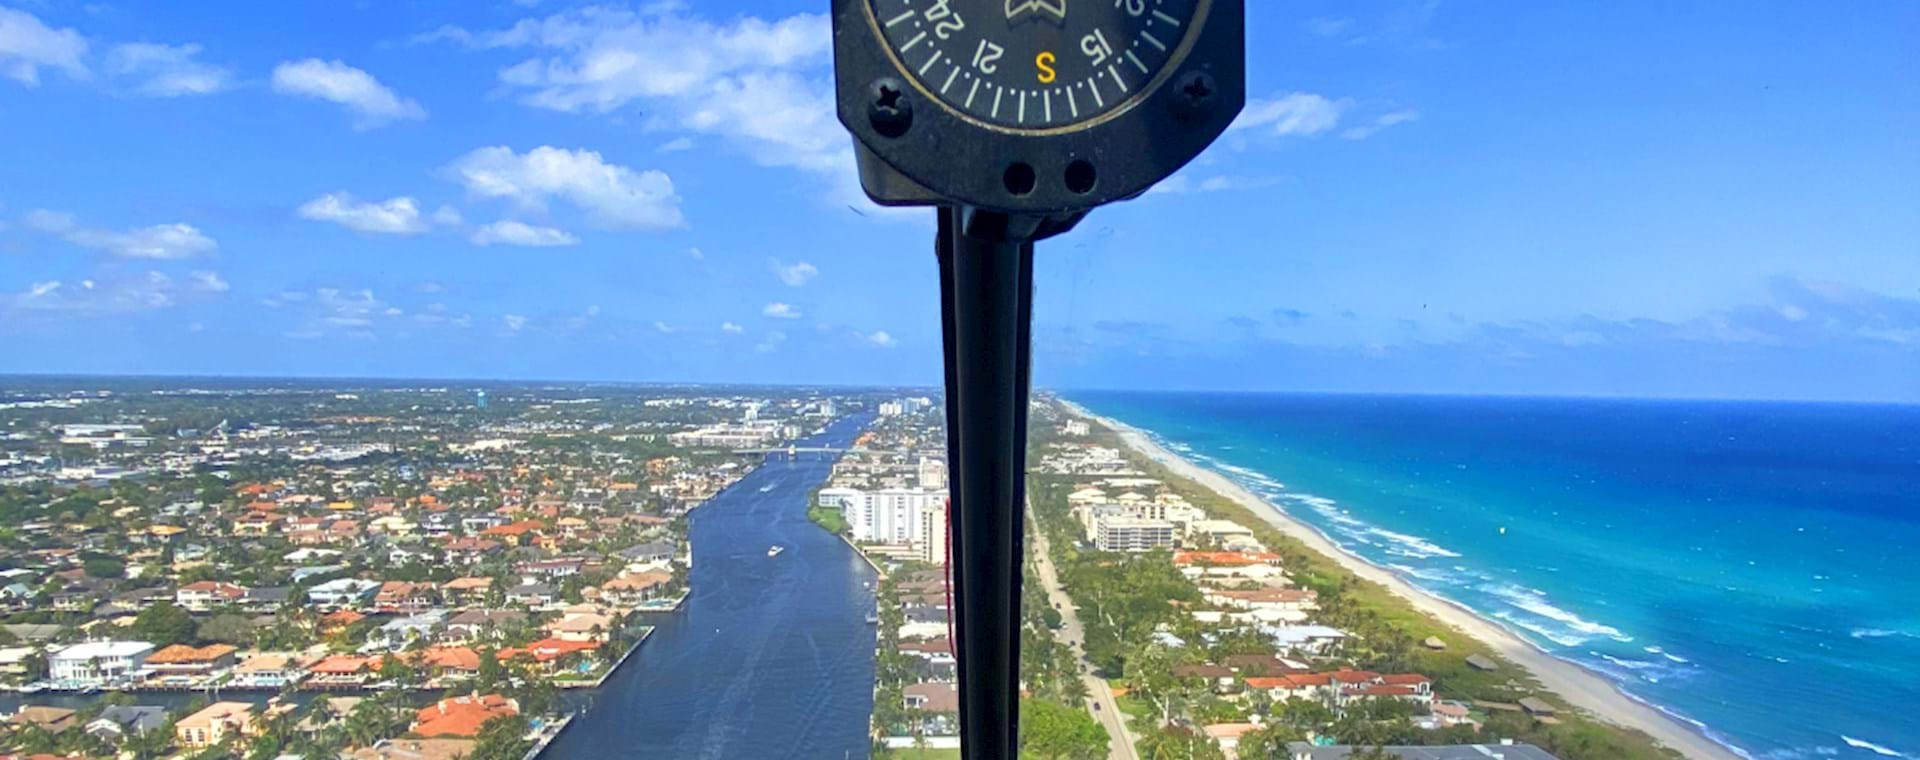 view of Miami from helicopter